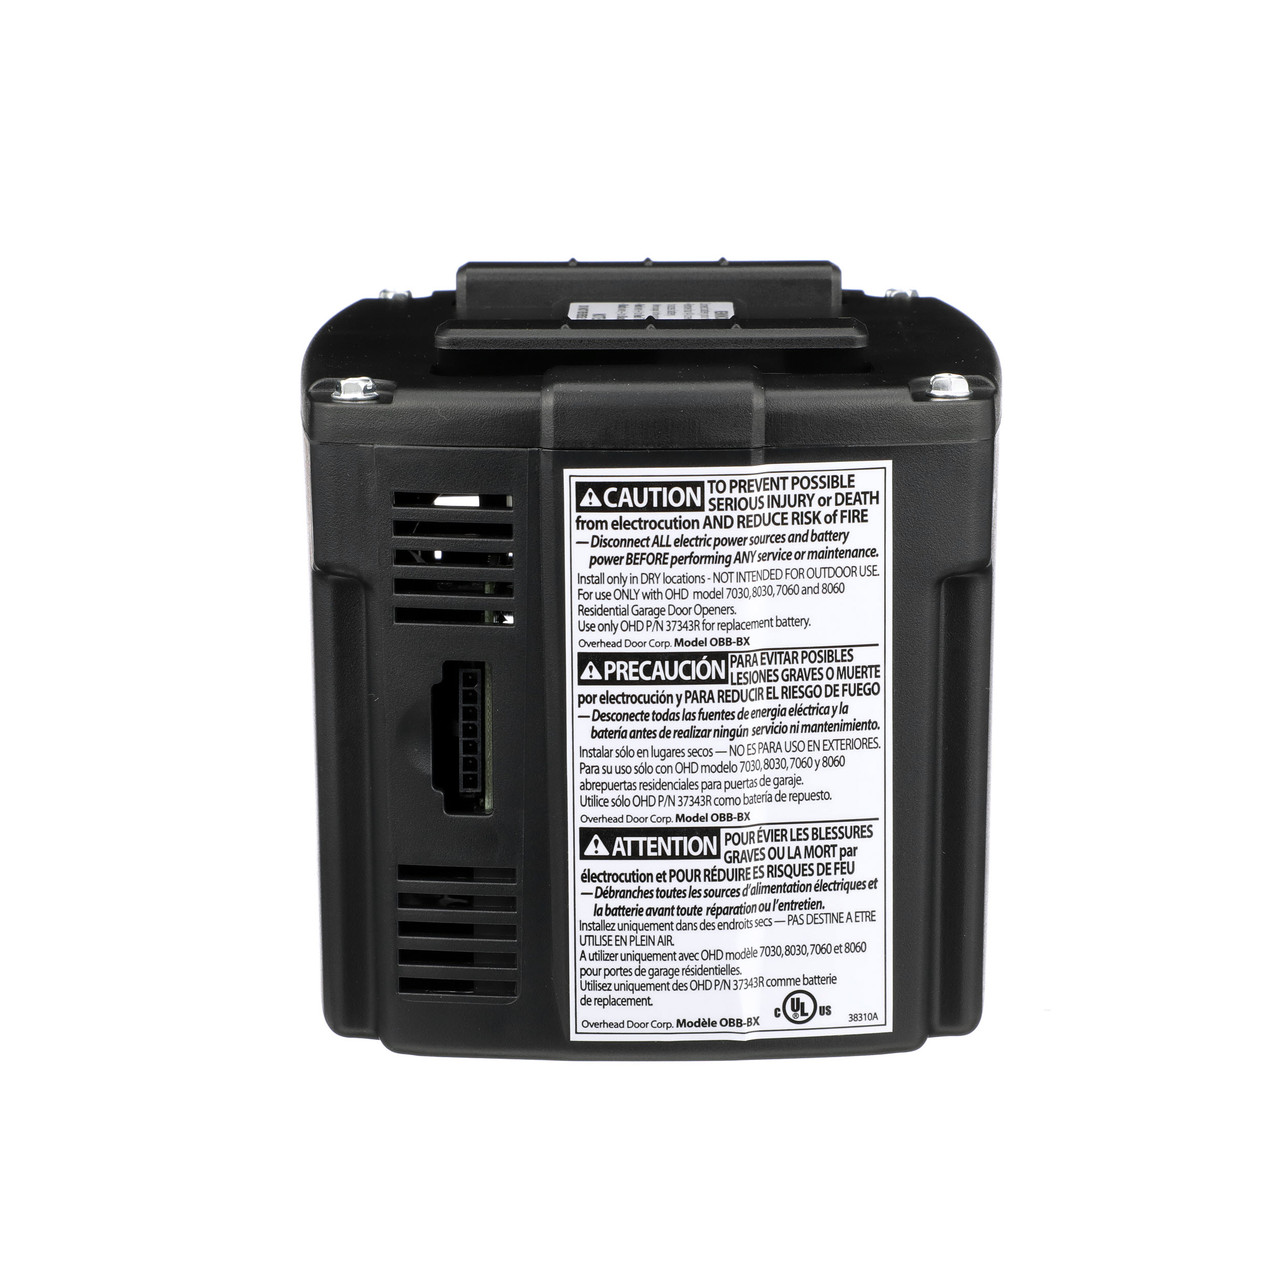 BATTERY BACK UP (SERIES III)